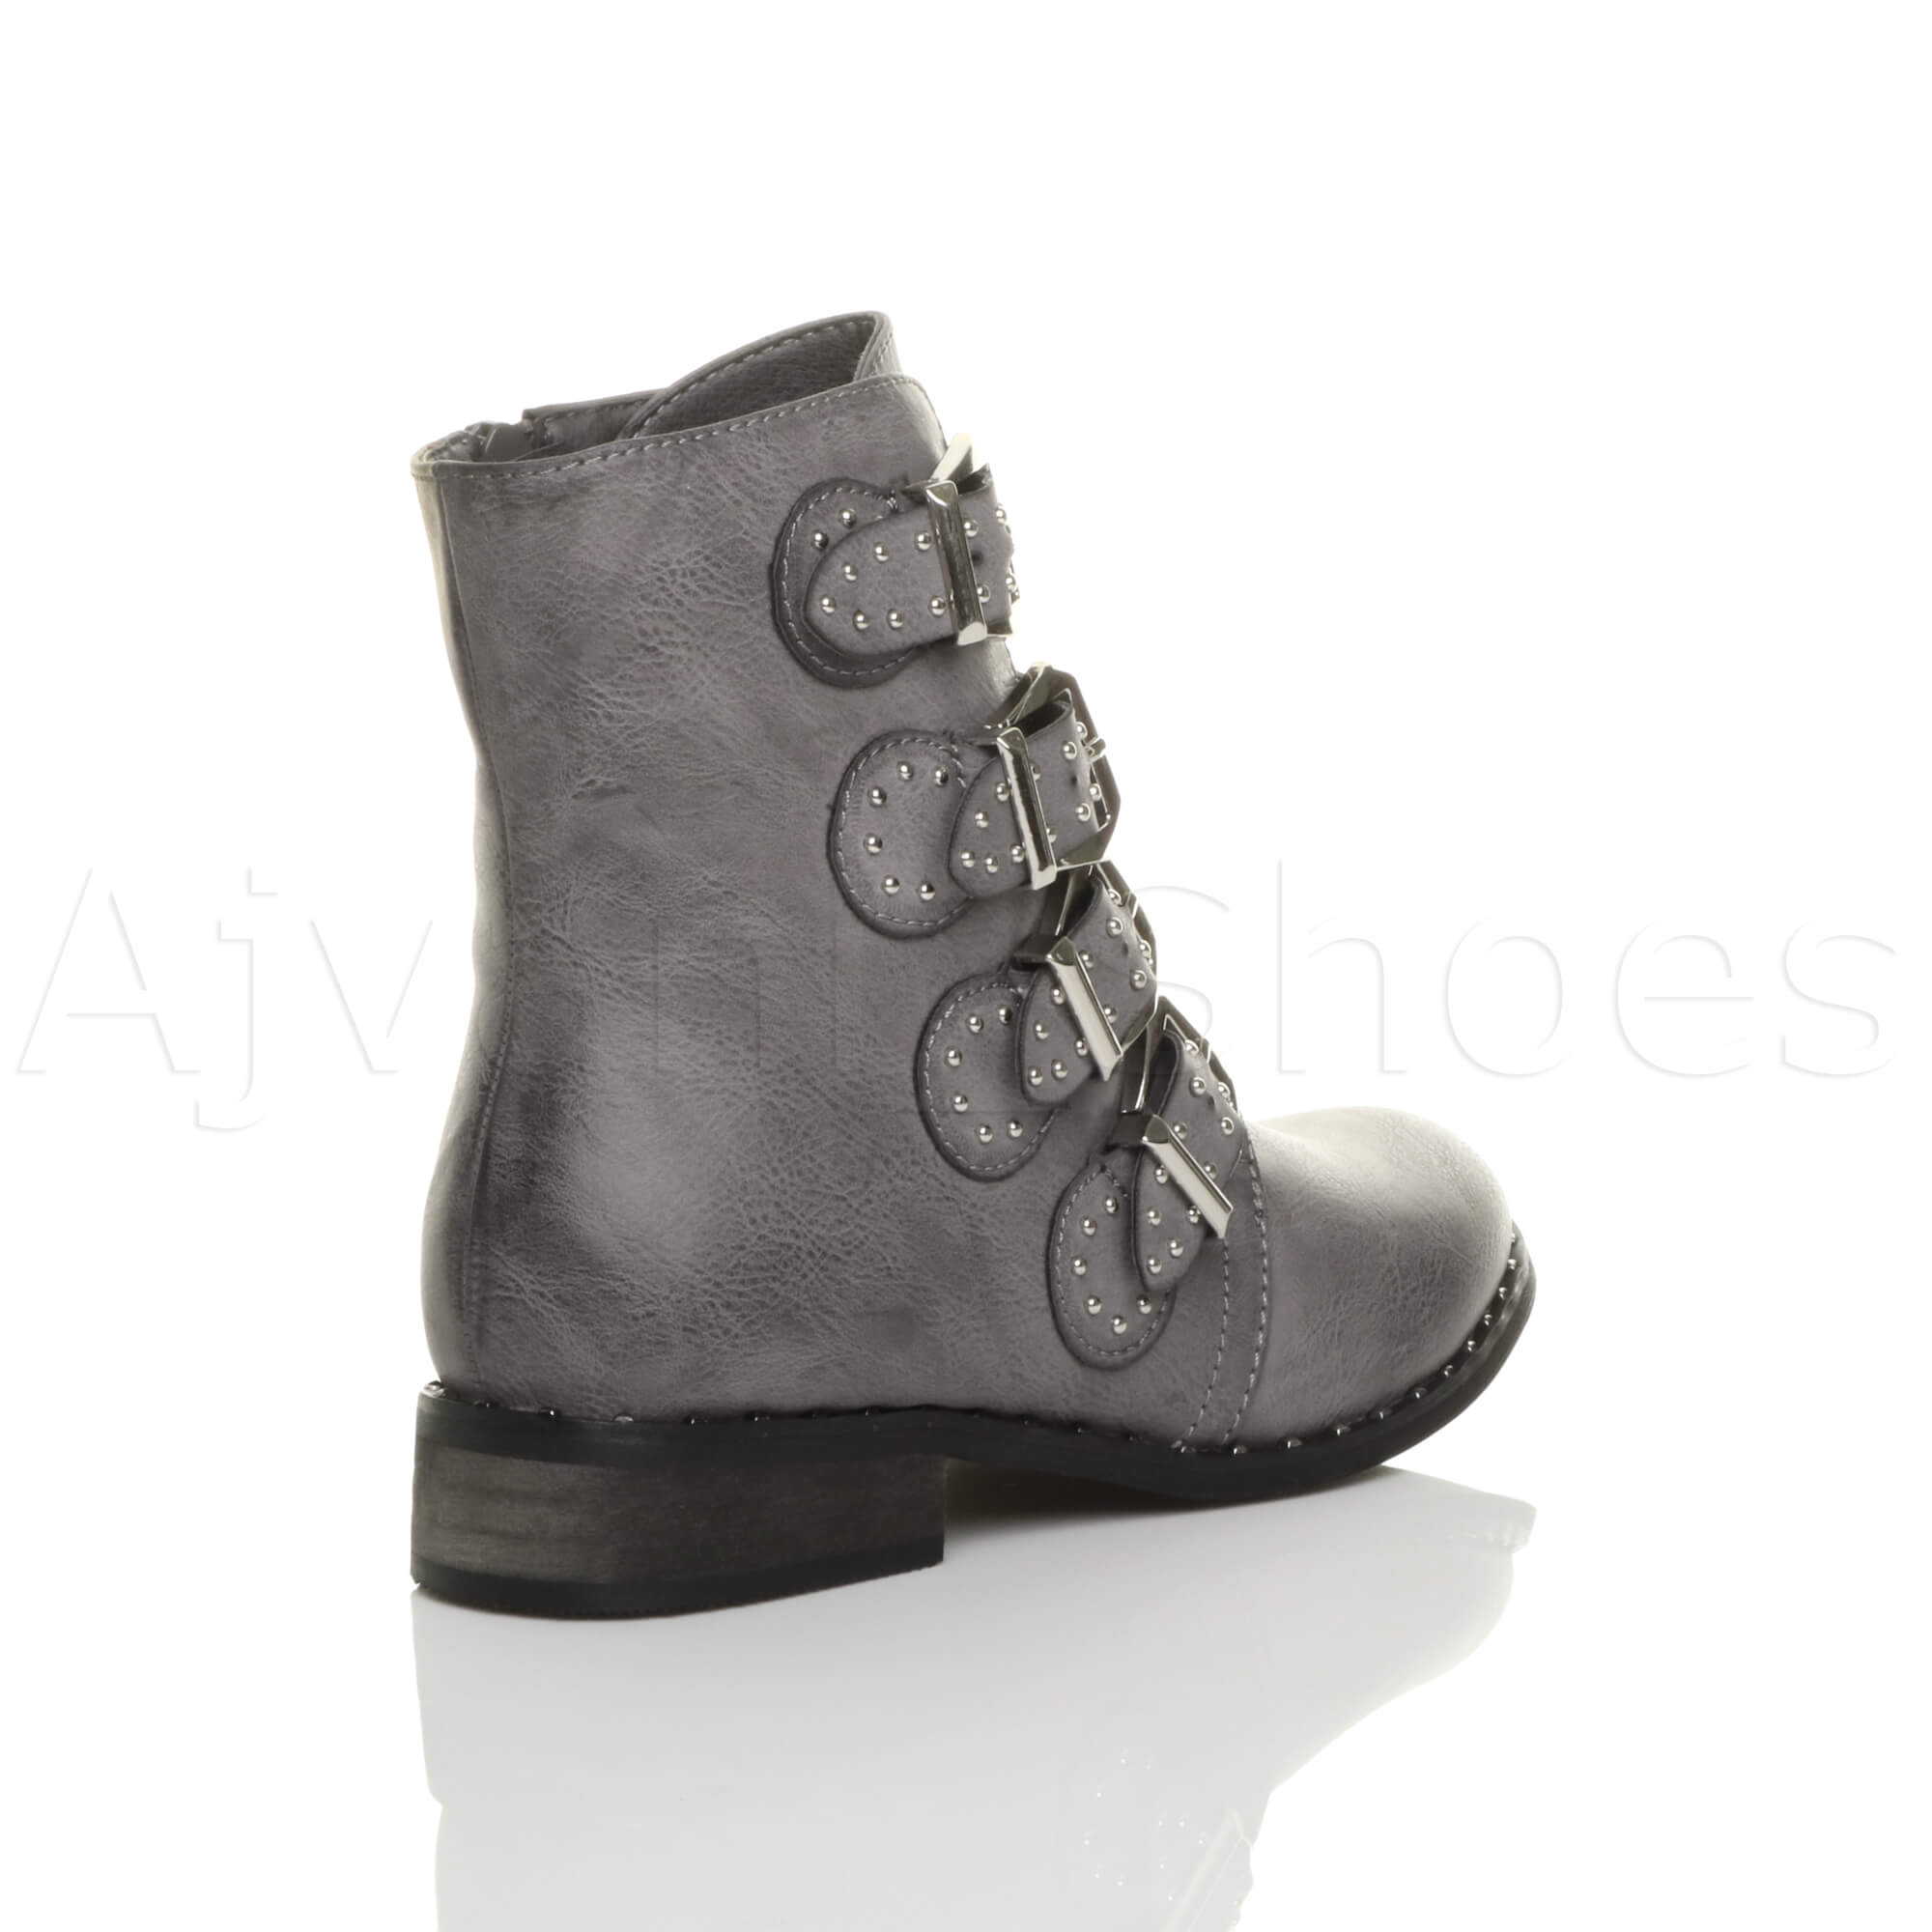 WOMENS-LADIES-BLOCK-LOW-HEEL-STUDDED-BUCKLE-STRAP-WESTERN-BIKER-ANKLE-BOOTS-SIZE